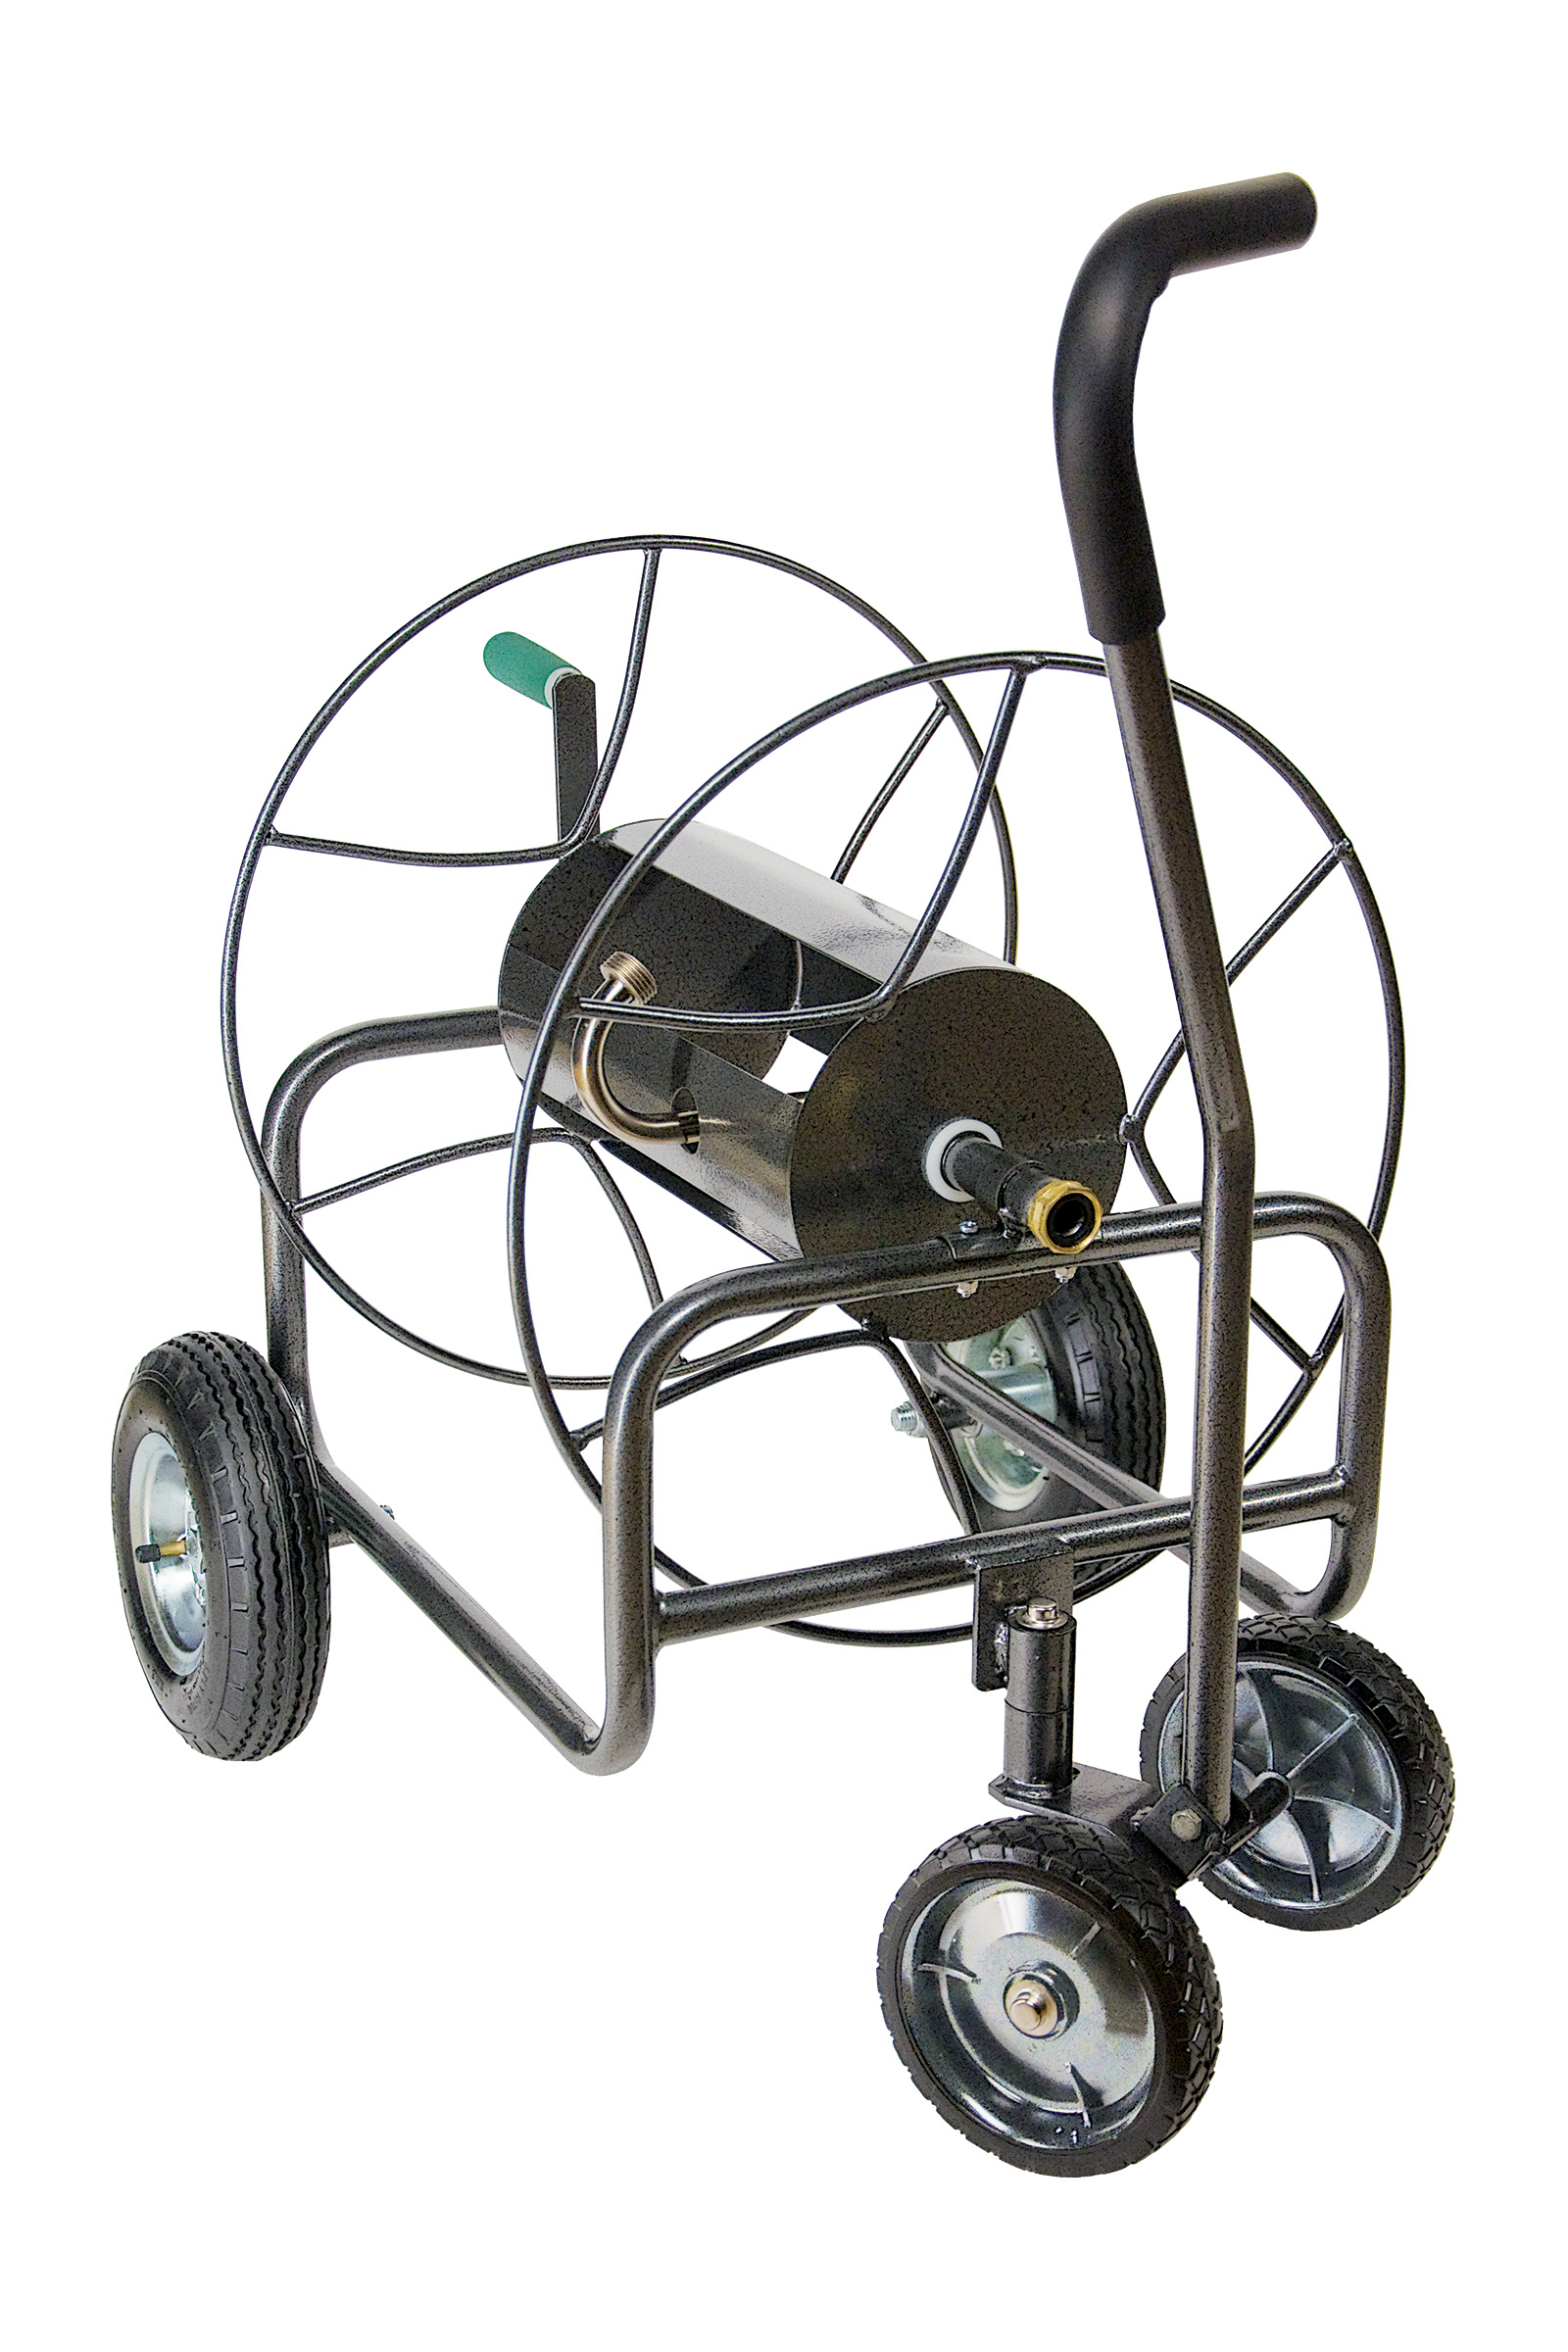 EZ Turn Hose Cart